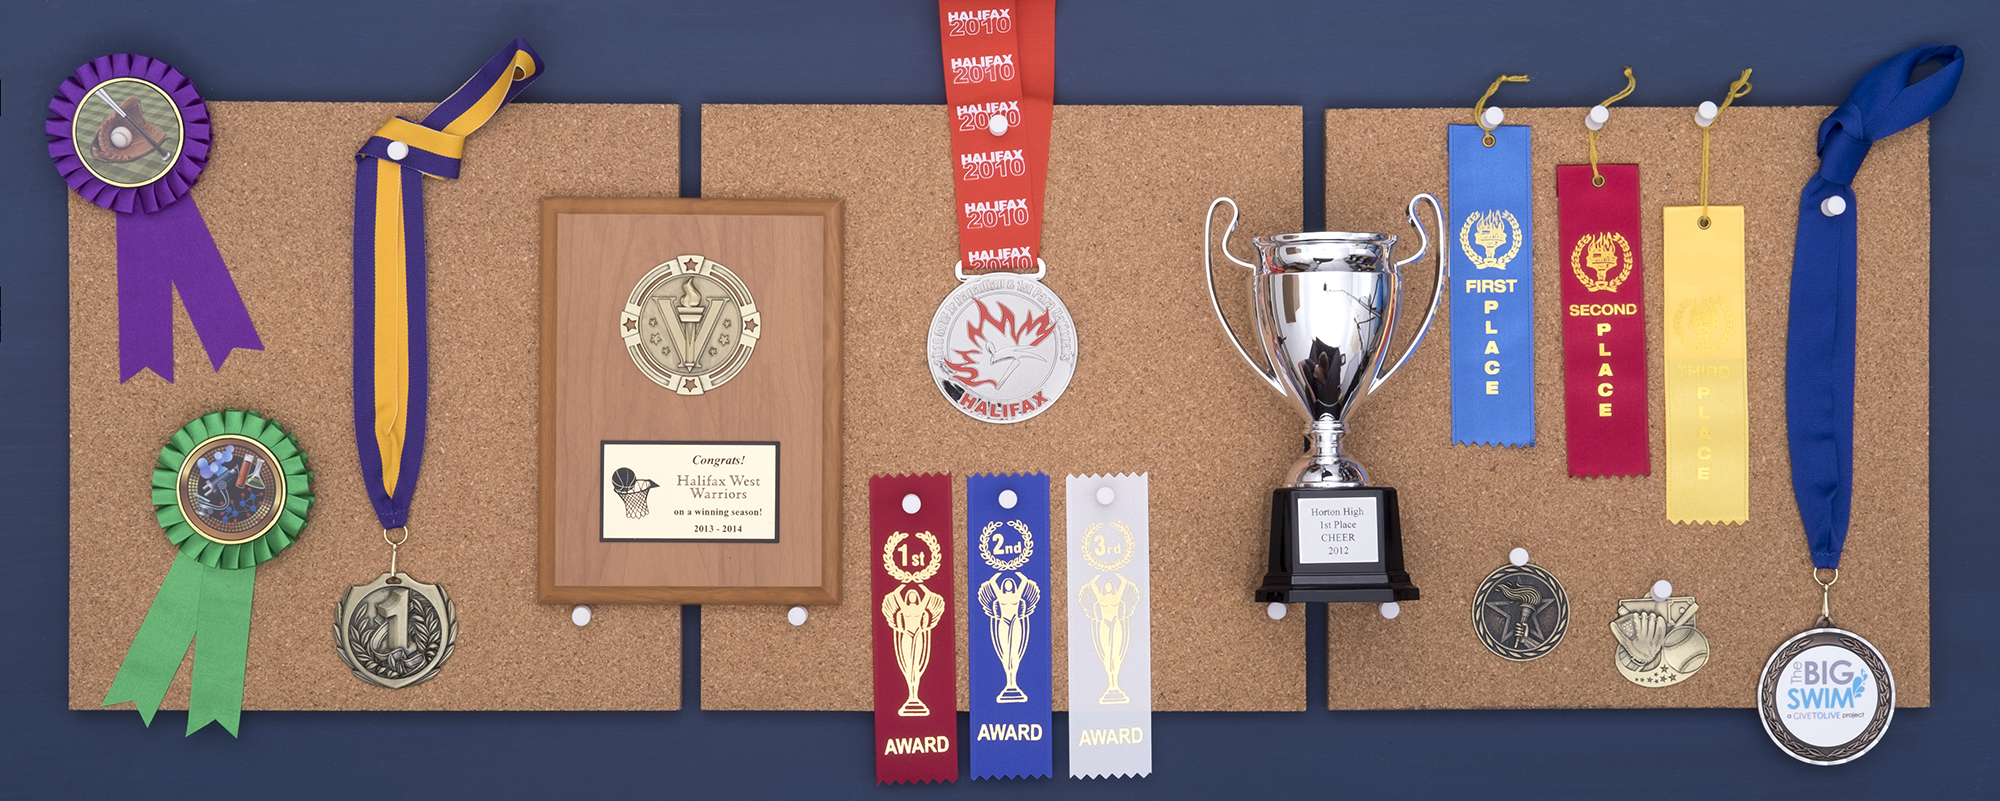 Ribbons and Plaques hanging on a corkboard